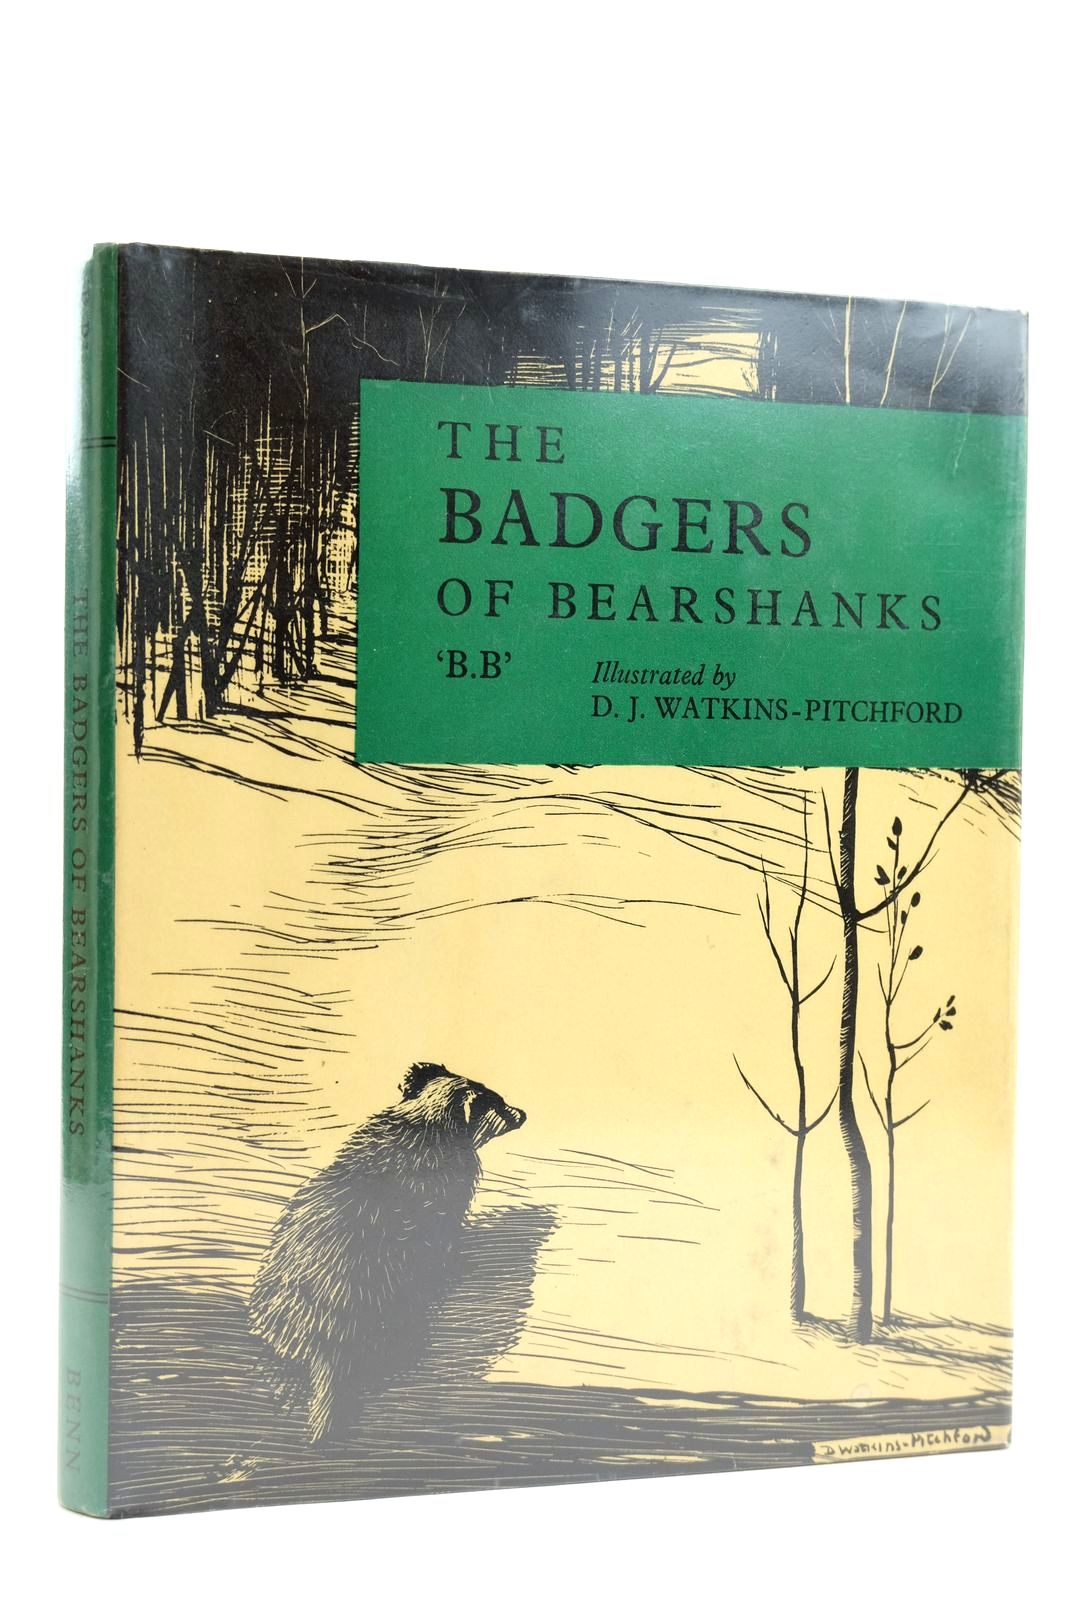 Photo of THE BADGERS OF BEARSHANKS- Stock Number: 2131771